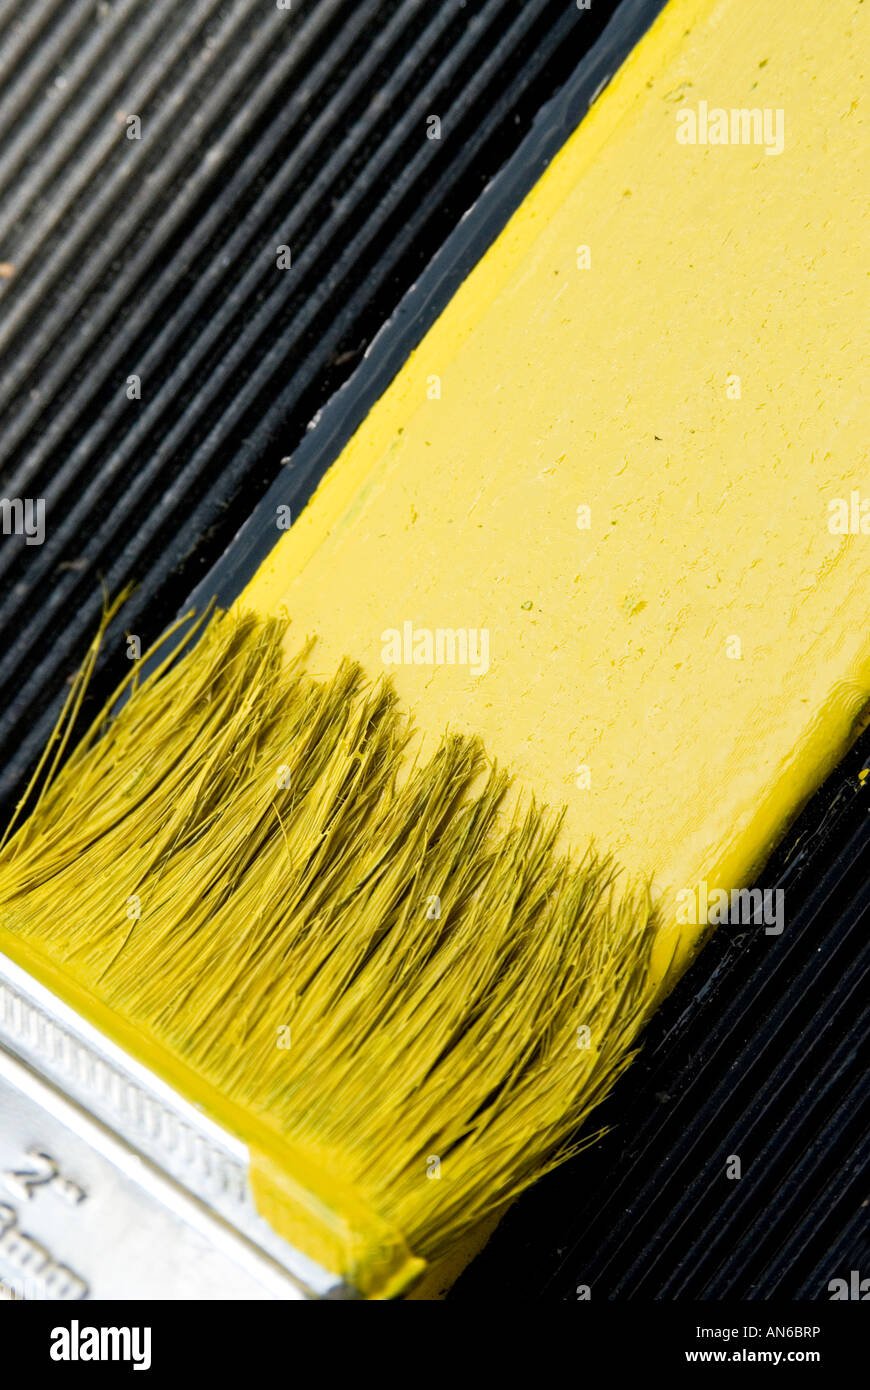 Peinture pinceau jaune, close-up Photo Stock